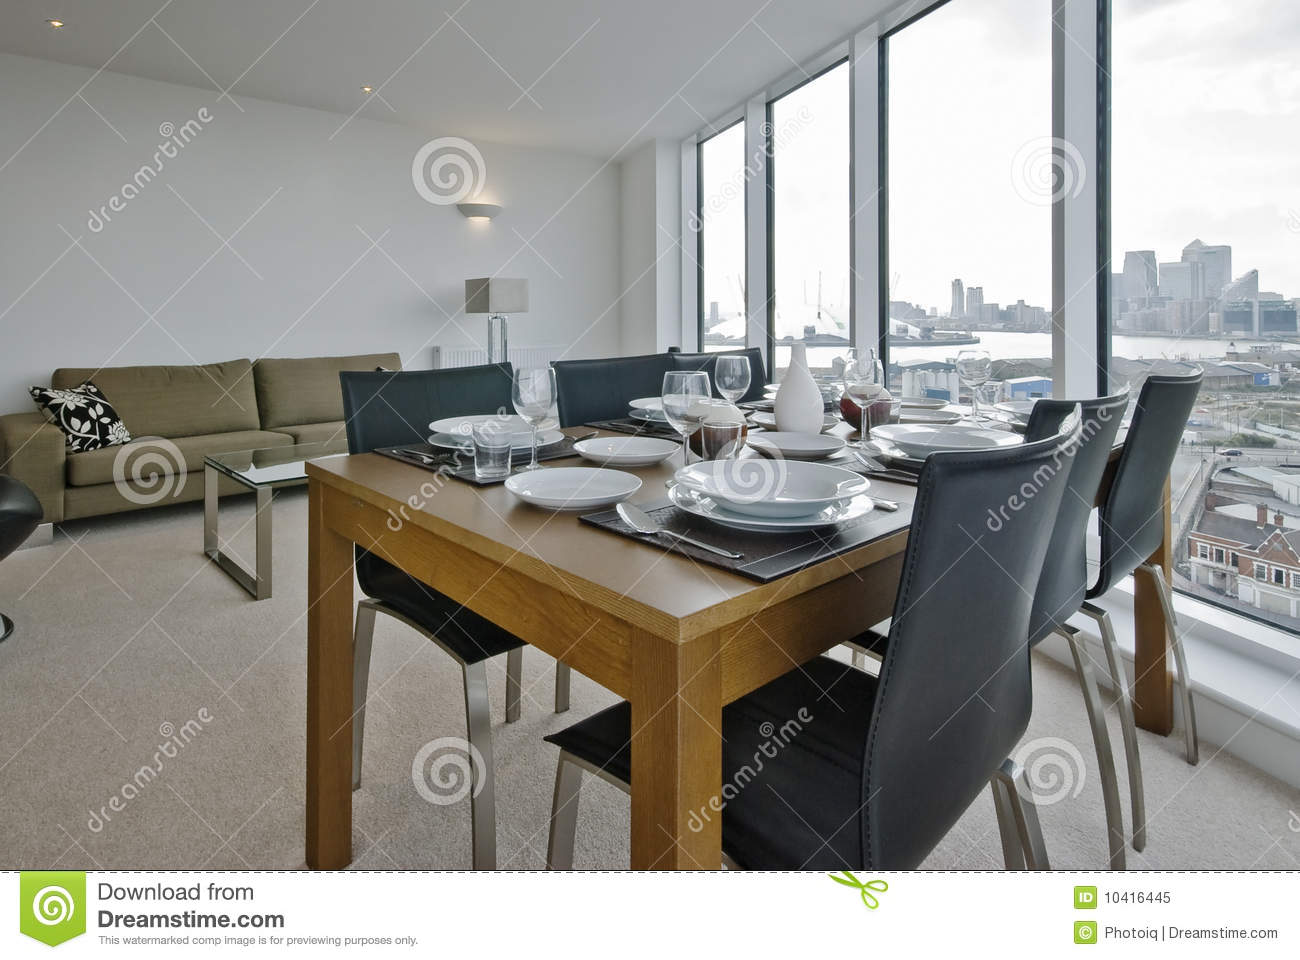 Living room with dining table set up royalty free stock for Table in living room